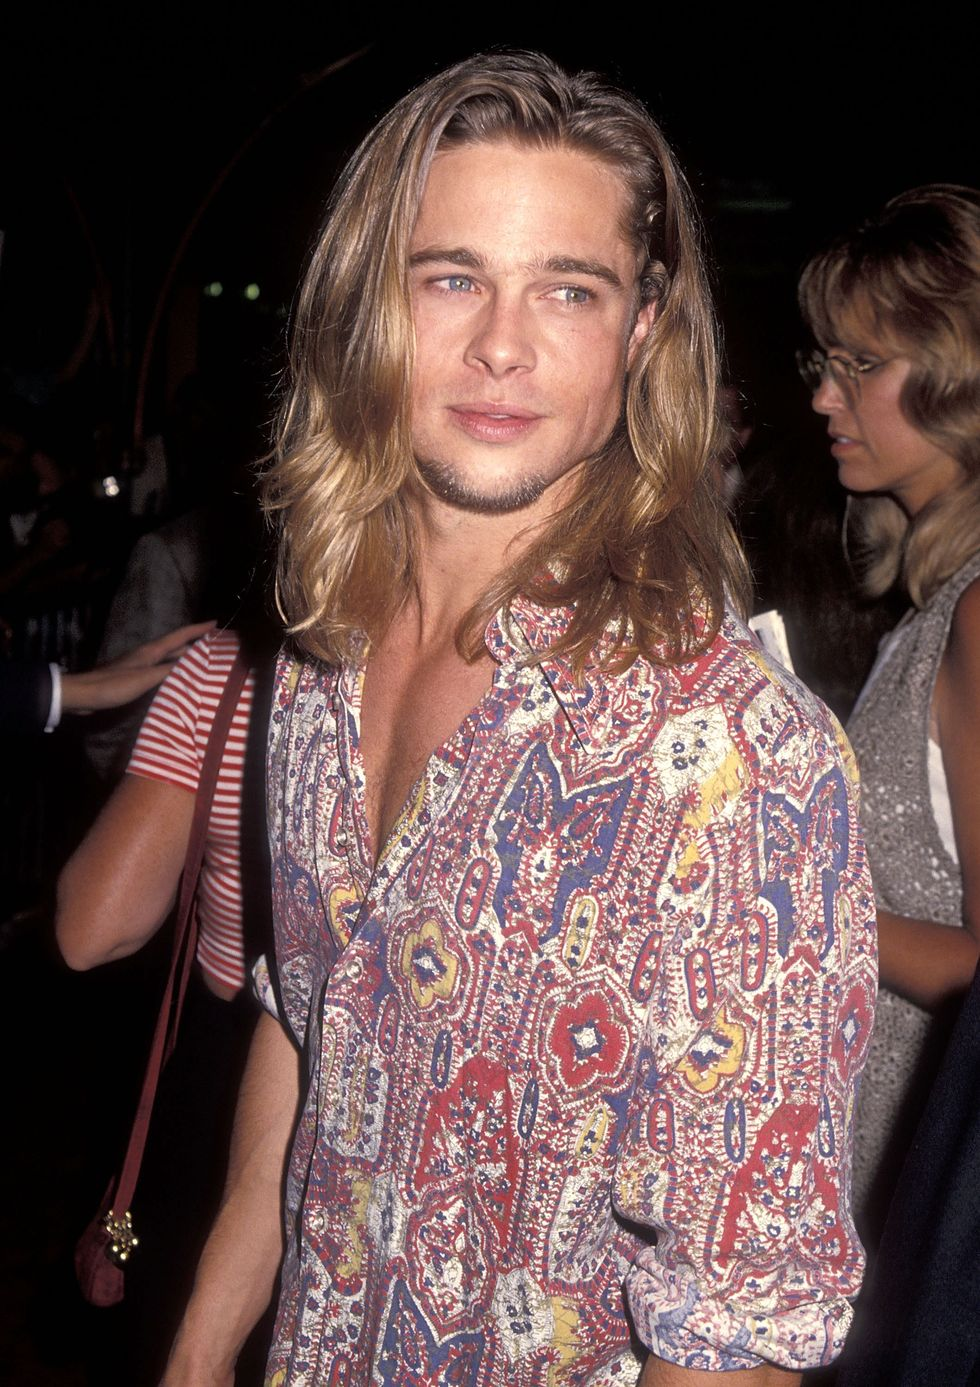 1993: Signature Style One of Pitt's most notable features in his early heartthrob days was his hair, despite its often-changing color and style.